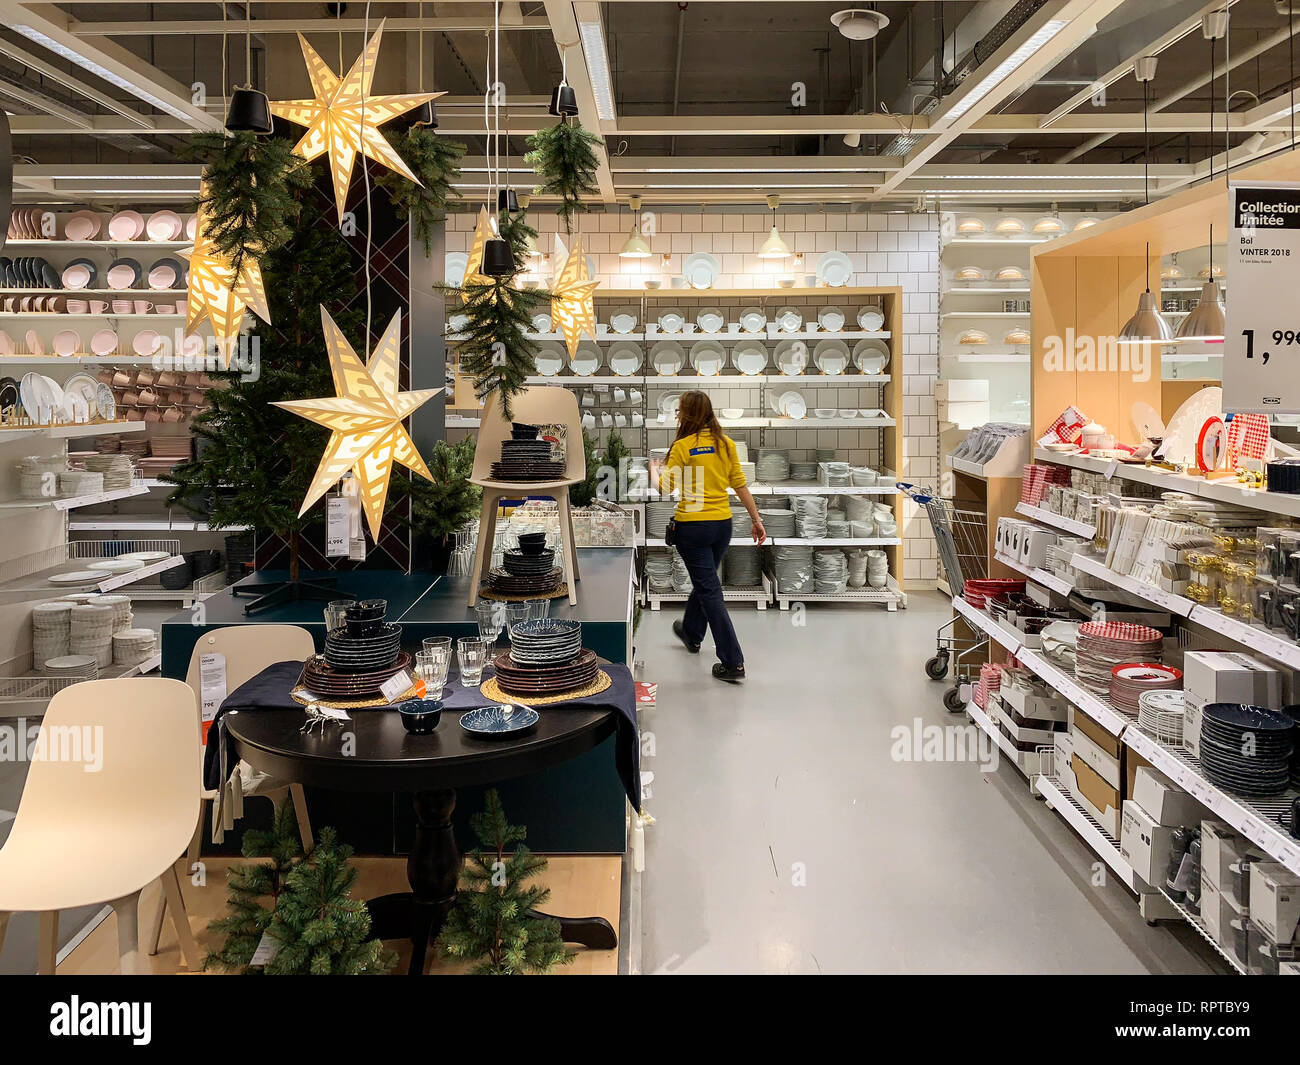 Christmas Articles.Paris France Cot 23 2018 Ikea Store Getting Ready For